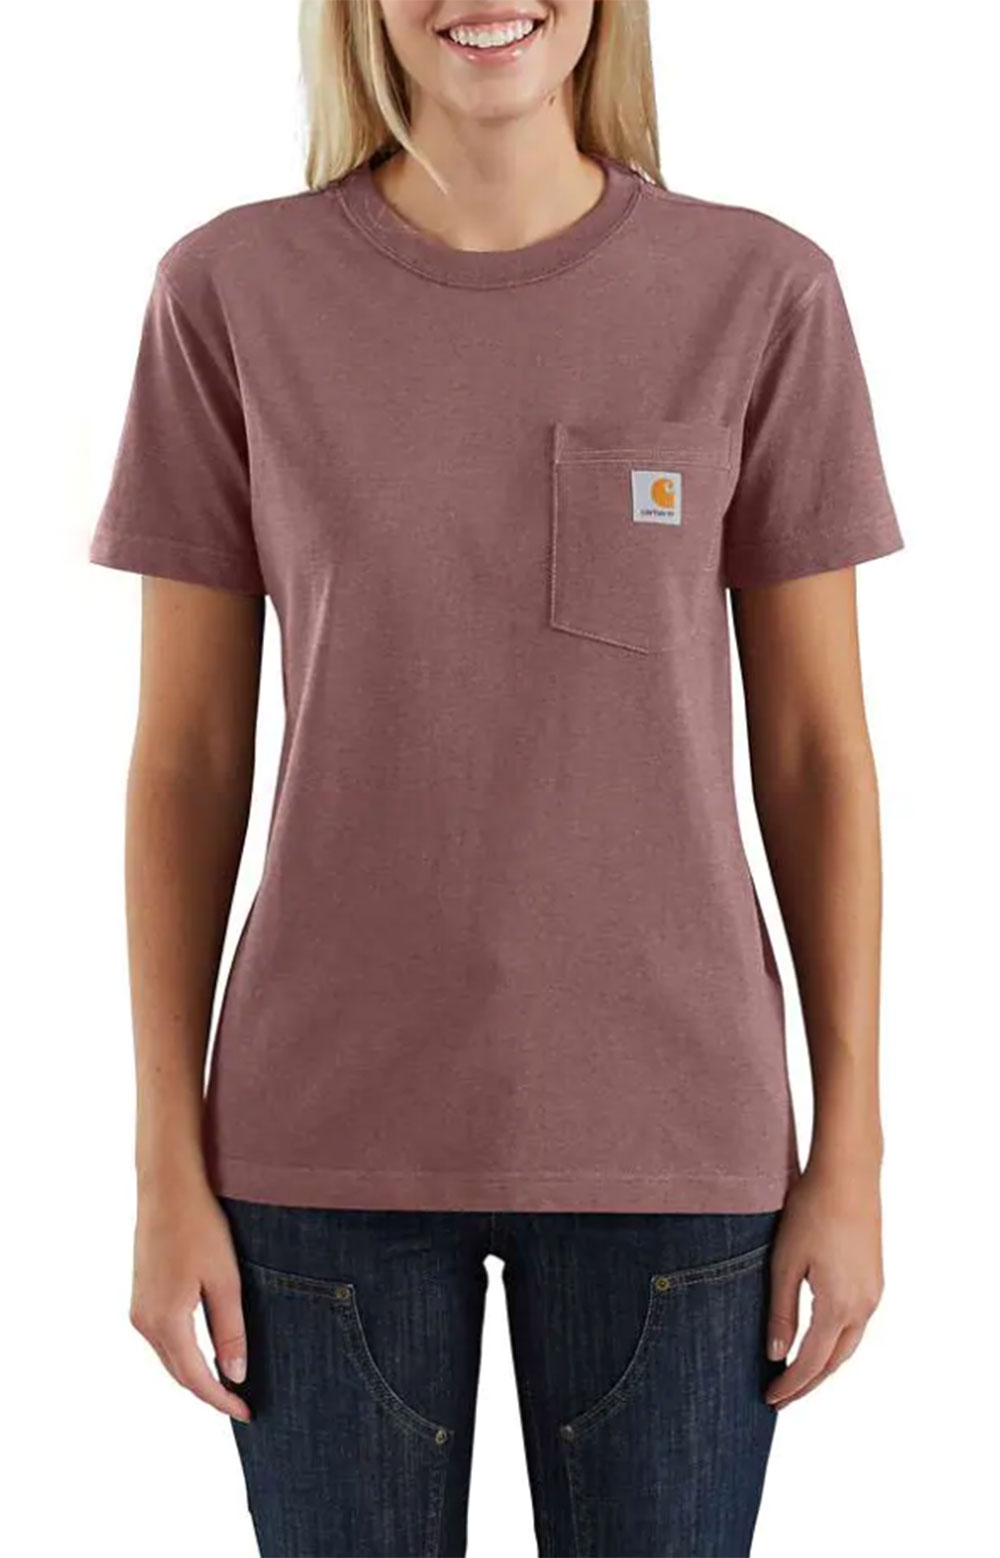 (104687) Loose Fit HW S/S Pocket Tried & True Graphic T-Shirt - Raisin Heather